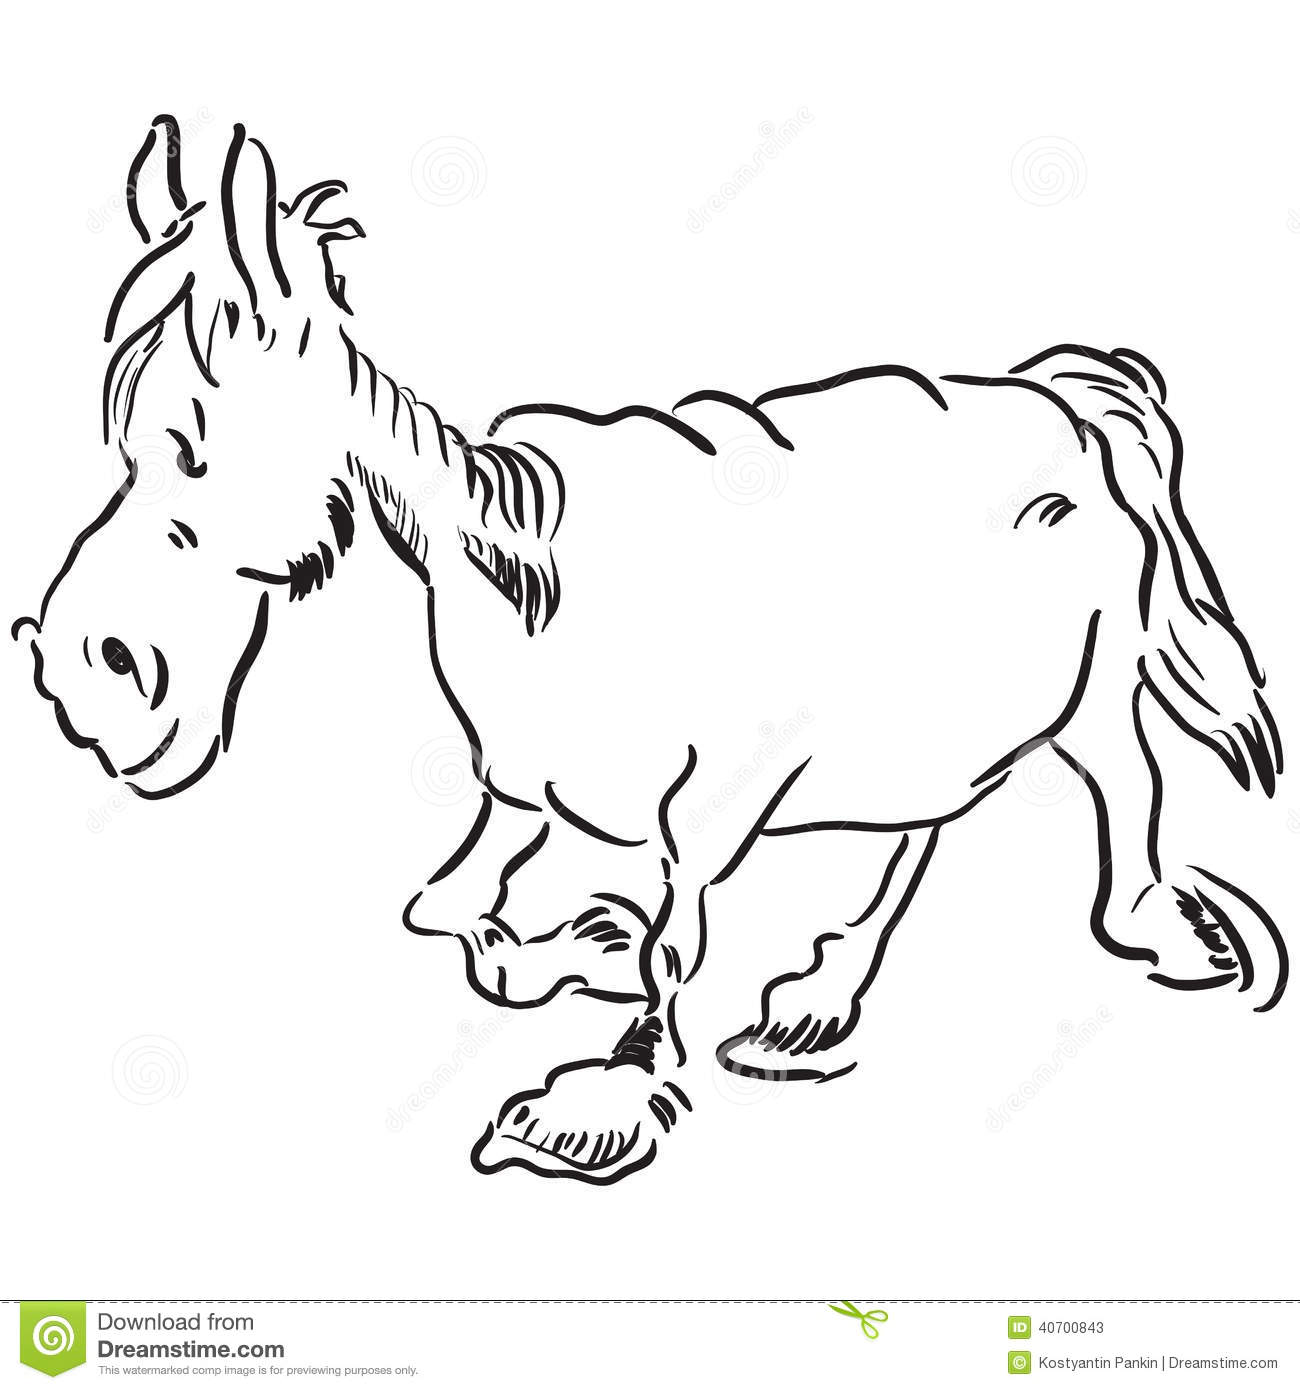 Farm furthermore Stock Photos Old Horse Running Nag Vector Illustration Trace Image40700843 furthermore Dutch Windmill Plans also Royalty Free Stock Photos Crow Image1054198 as well Stock Illustration Elegant Bird Coloring Page Exquisite Style Image58878963. on old time farm house plans